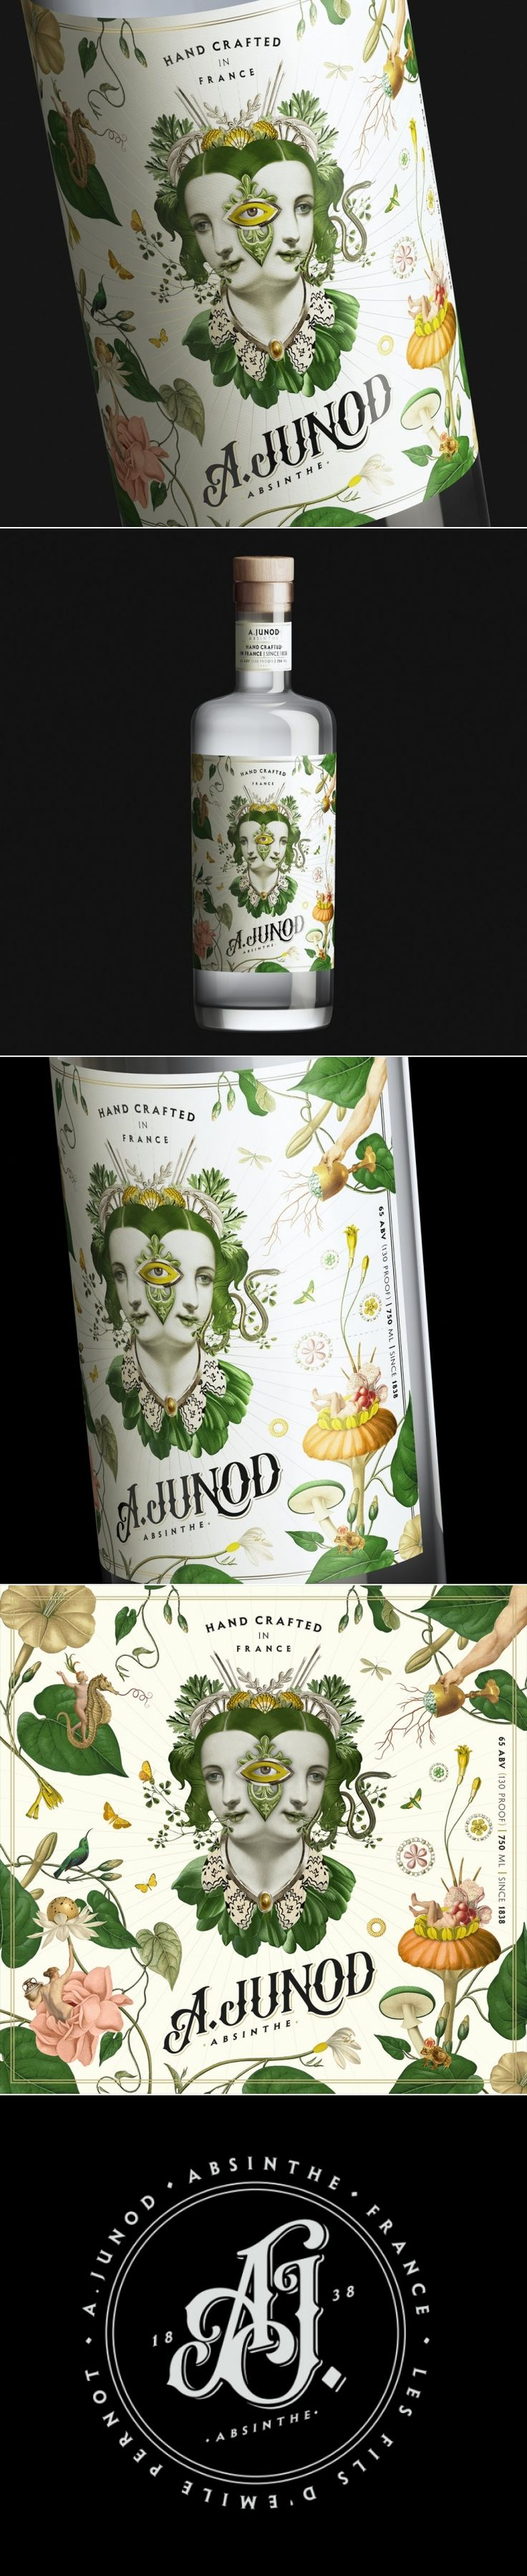 This New Absinthe Has a Stunning Collage-Inspired Label — The Dieline | Packaging & Branding Design & Innovation News